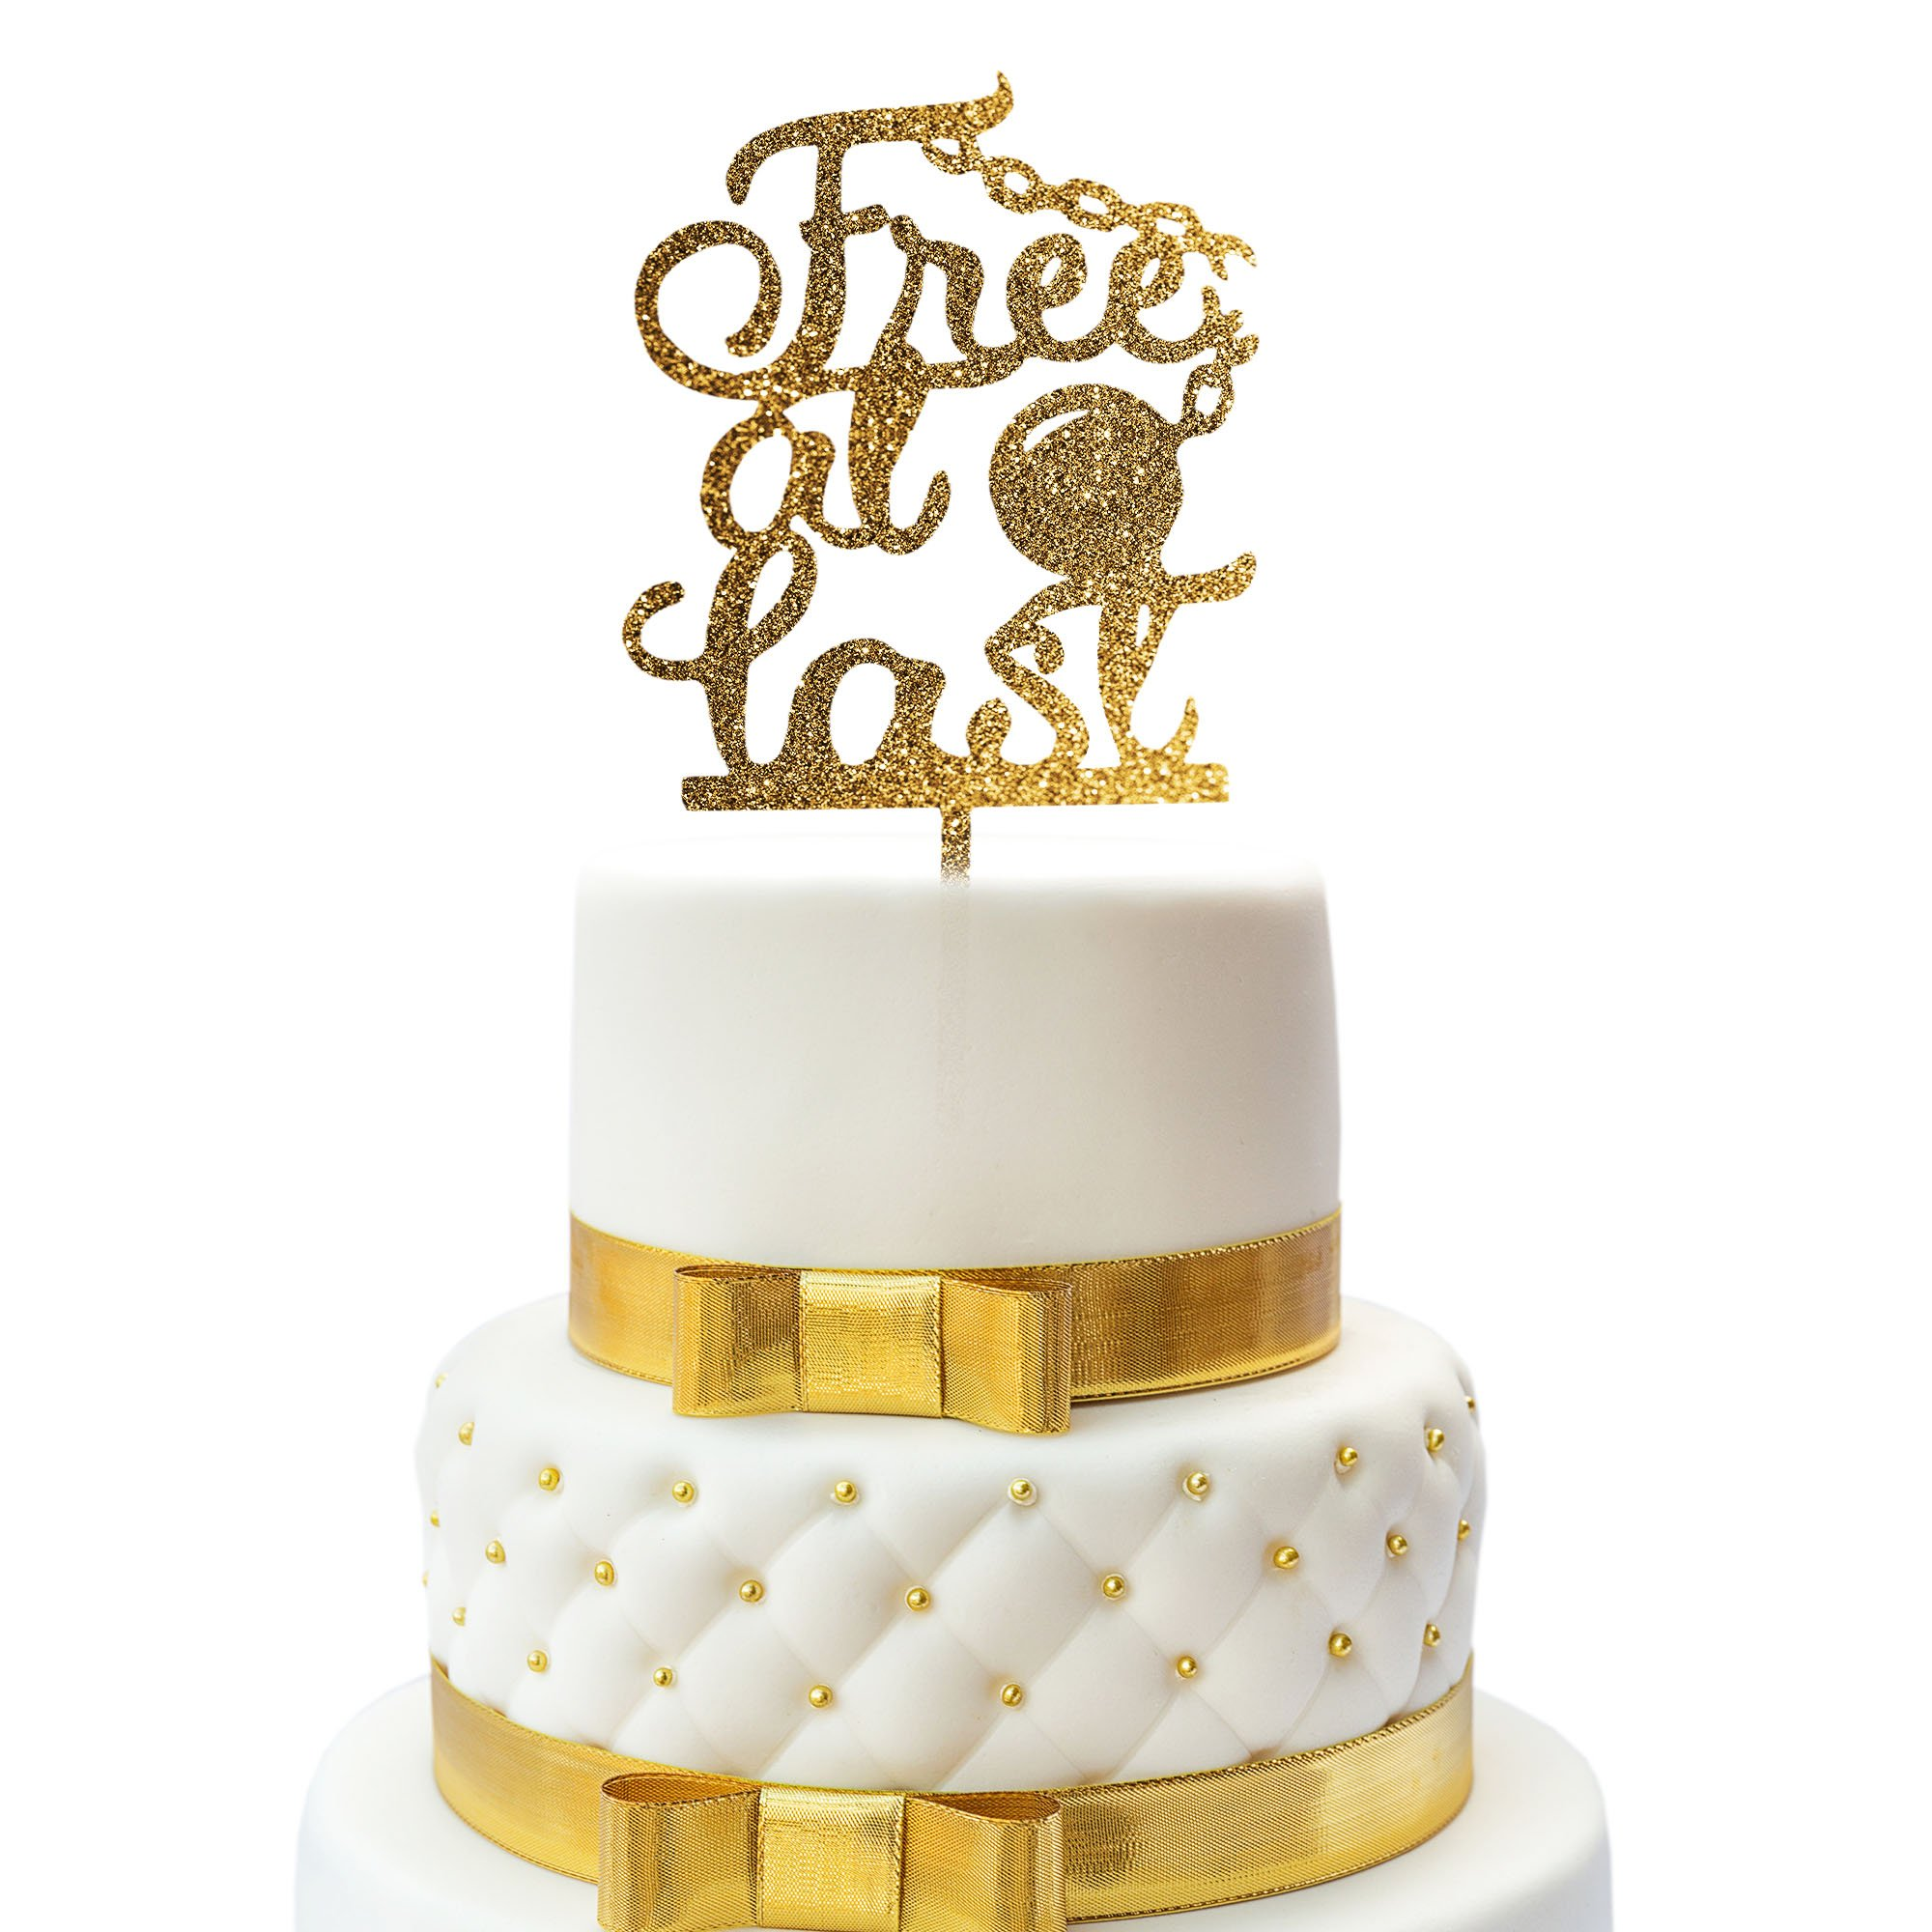 JennyGems Cake Topper - Divorce Party, Just Divorced, Break Up Party, Relationship Ends Party Cake Topper - Free At Last